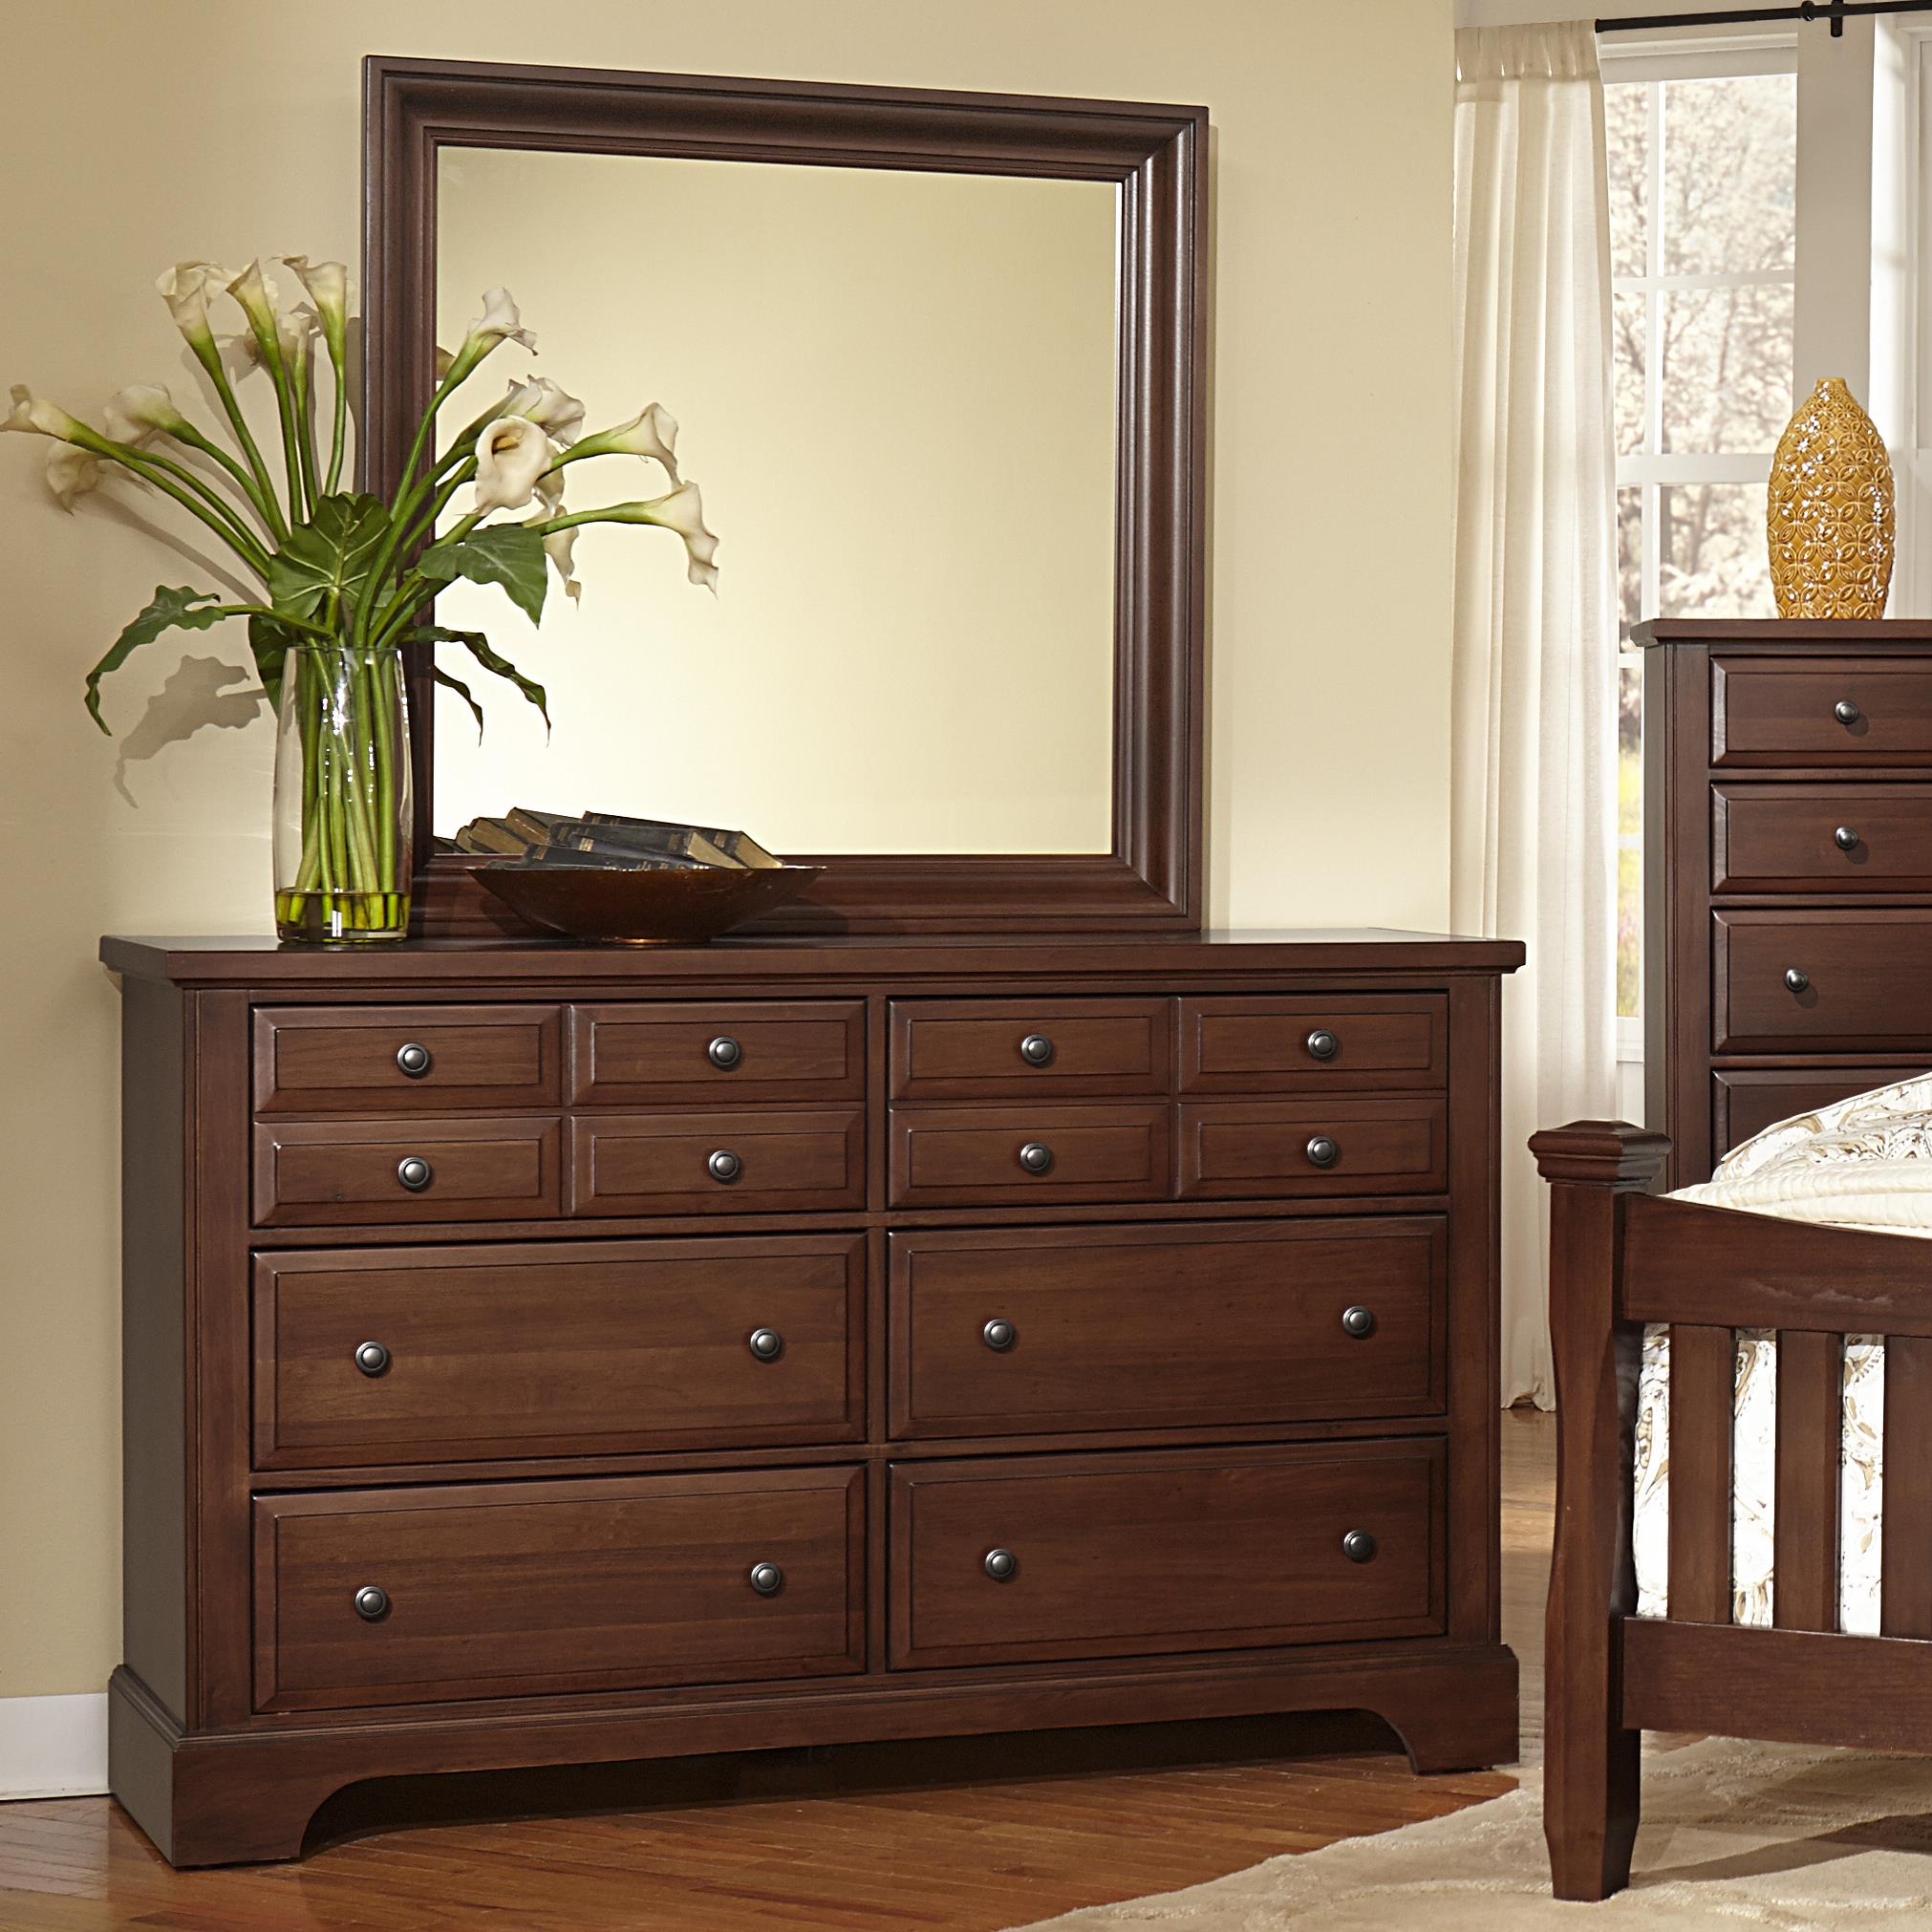 Vaughan Bassett Bedford Dresser - 6 drawers & Landscape Mirror - Item Number: BB89-002+445